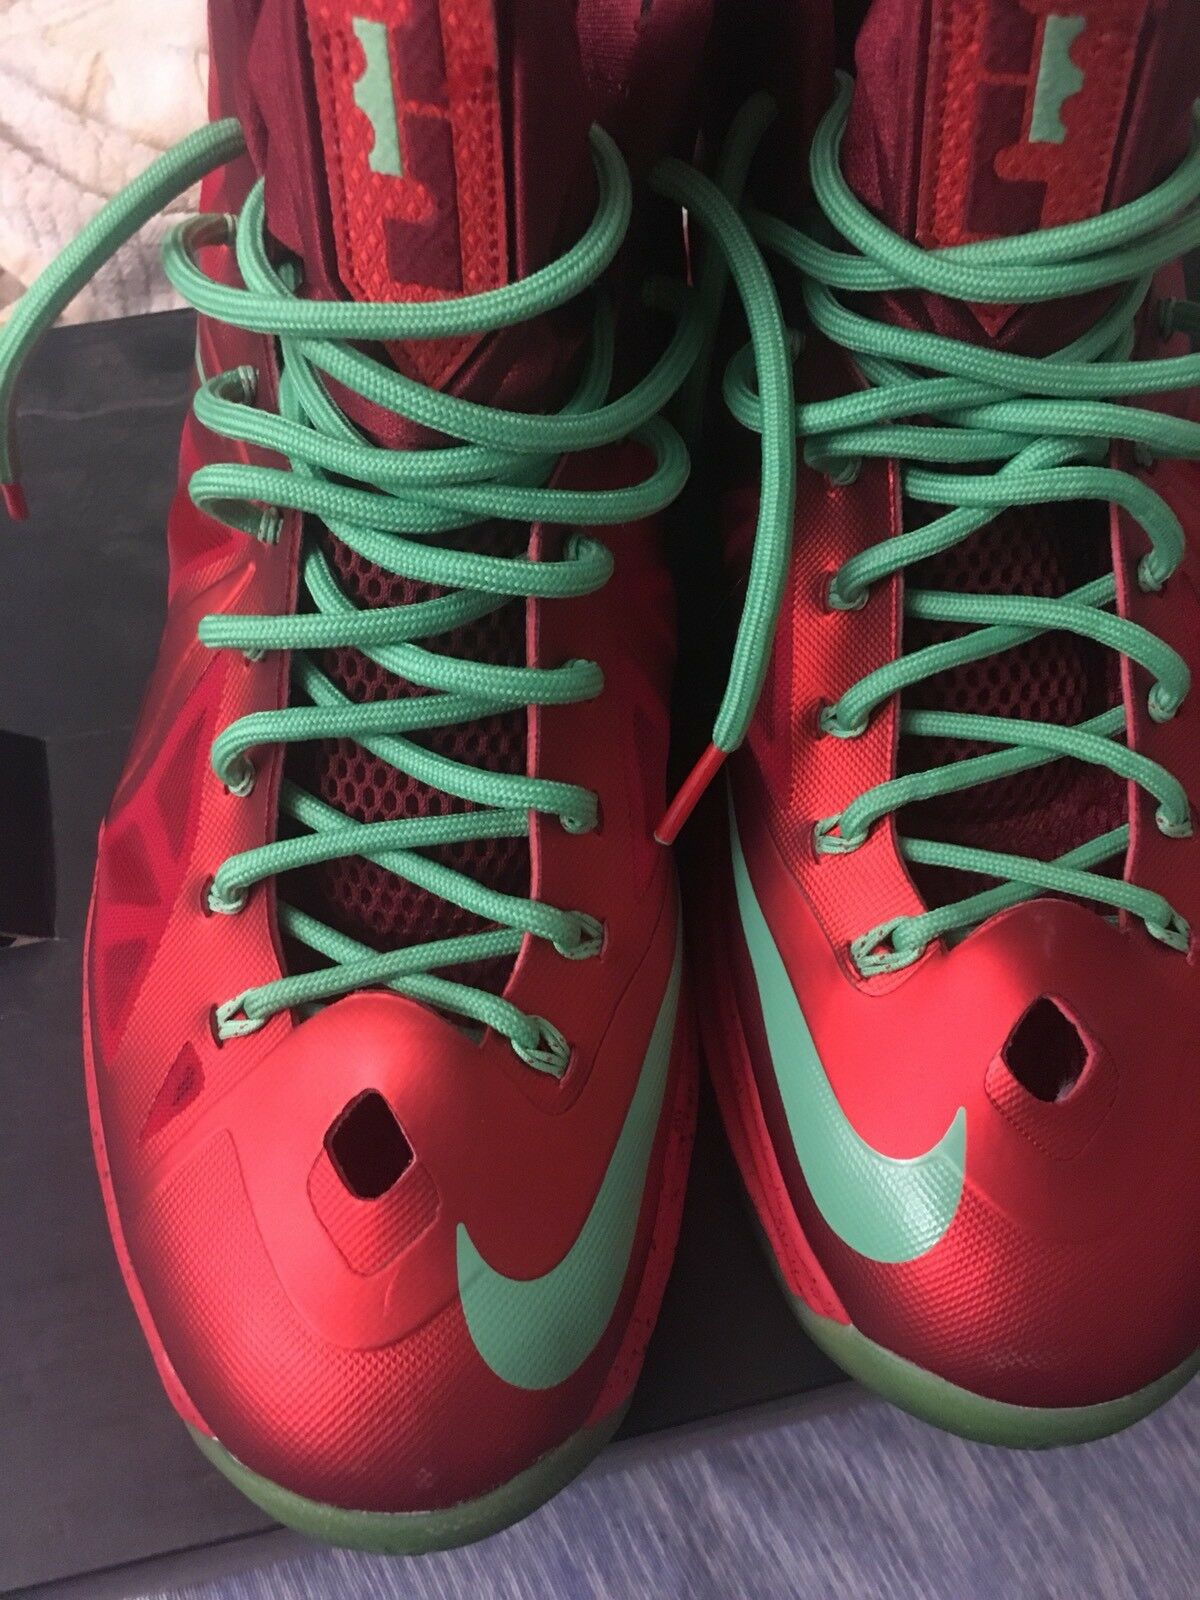 NIKE LEBRON X  CHRISTMAS   ITEM   541100-600, SIZE 11, PRE-OWNED , NEAR DS